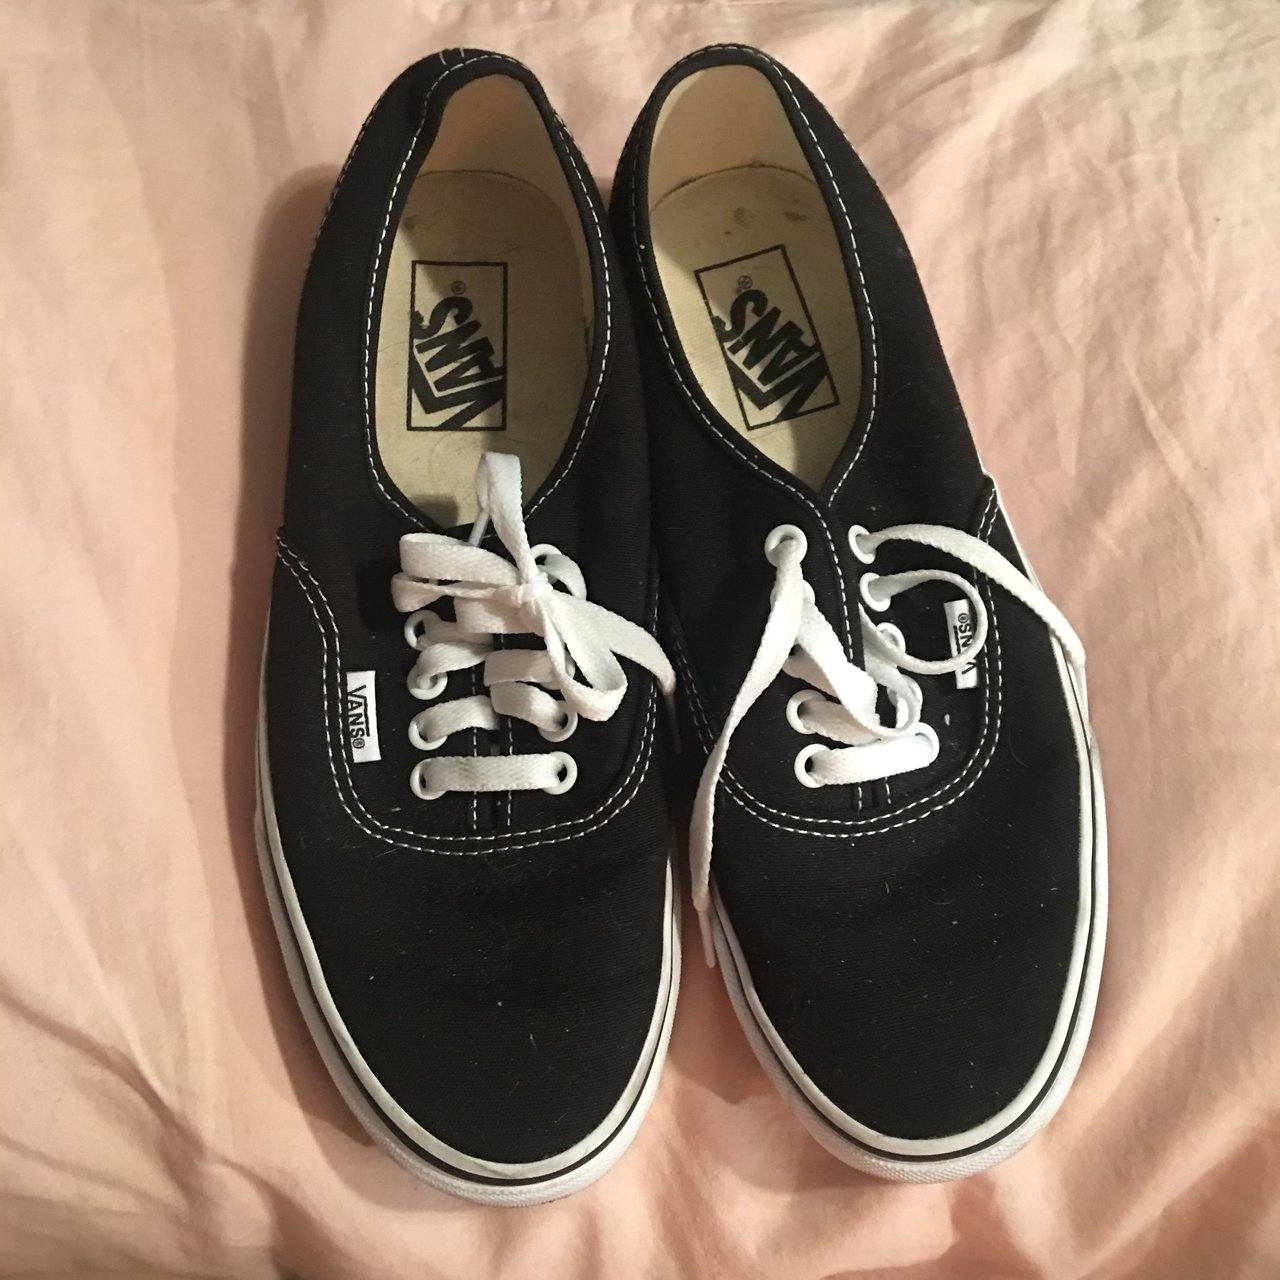 8454945692a Black original Vans Women s Size 8.5!! I wore them  once  so - Depop